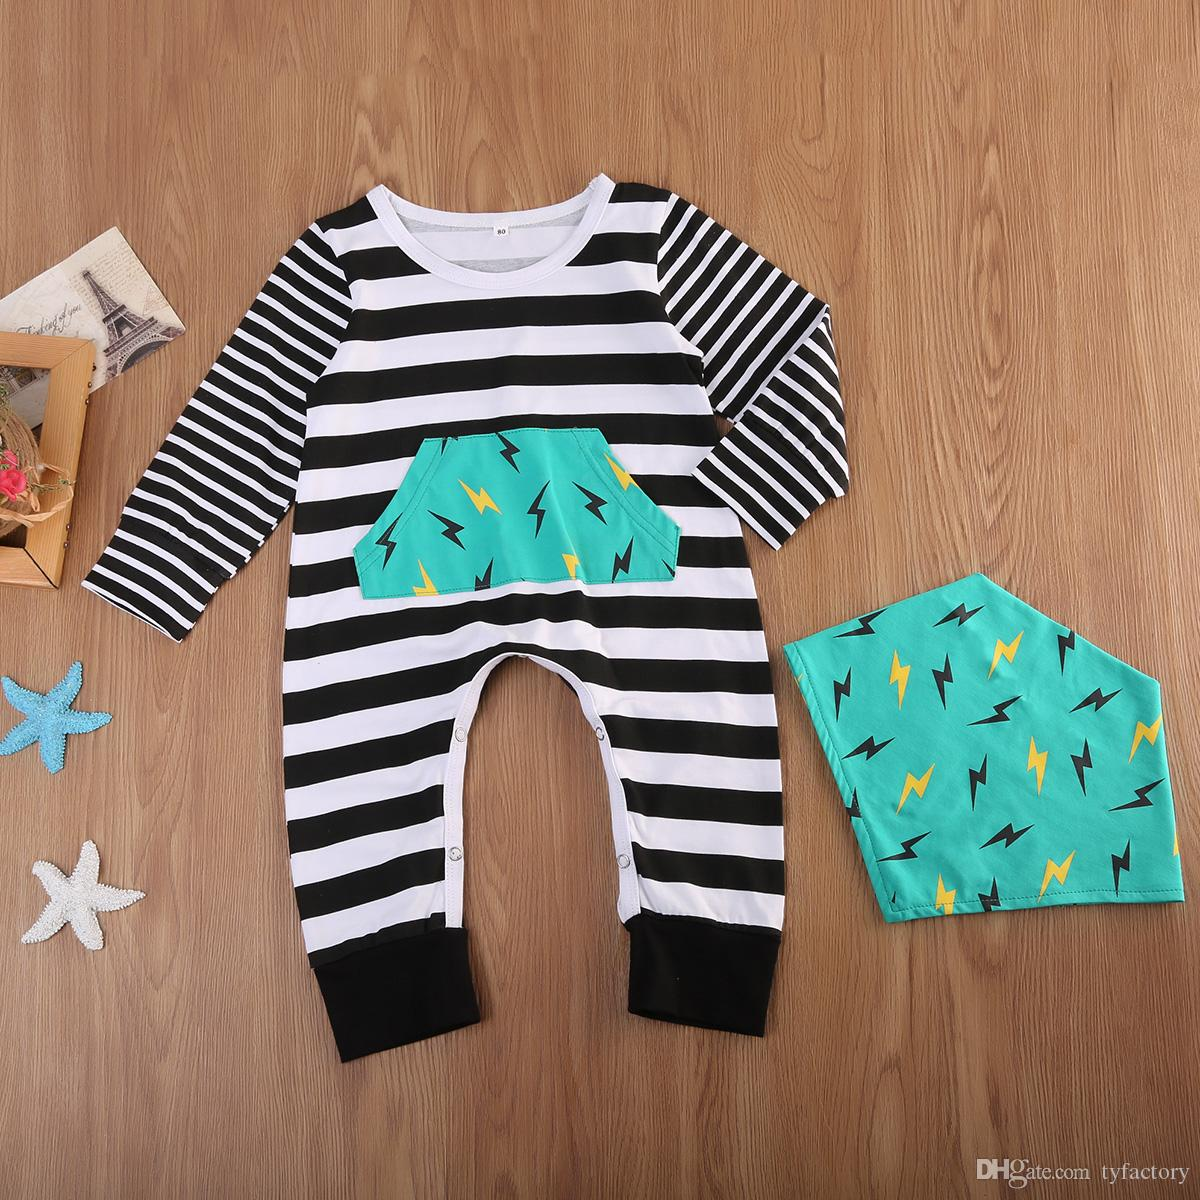 2018 Baby Boy Striped Romper Long Sleeve Jumpsuit Bib 2pcs set Geometric Flash Baby Clothes Outfits Kids Boys Girls Rompers Bodysuit 0-24M